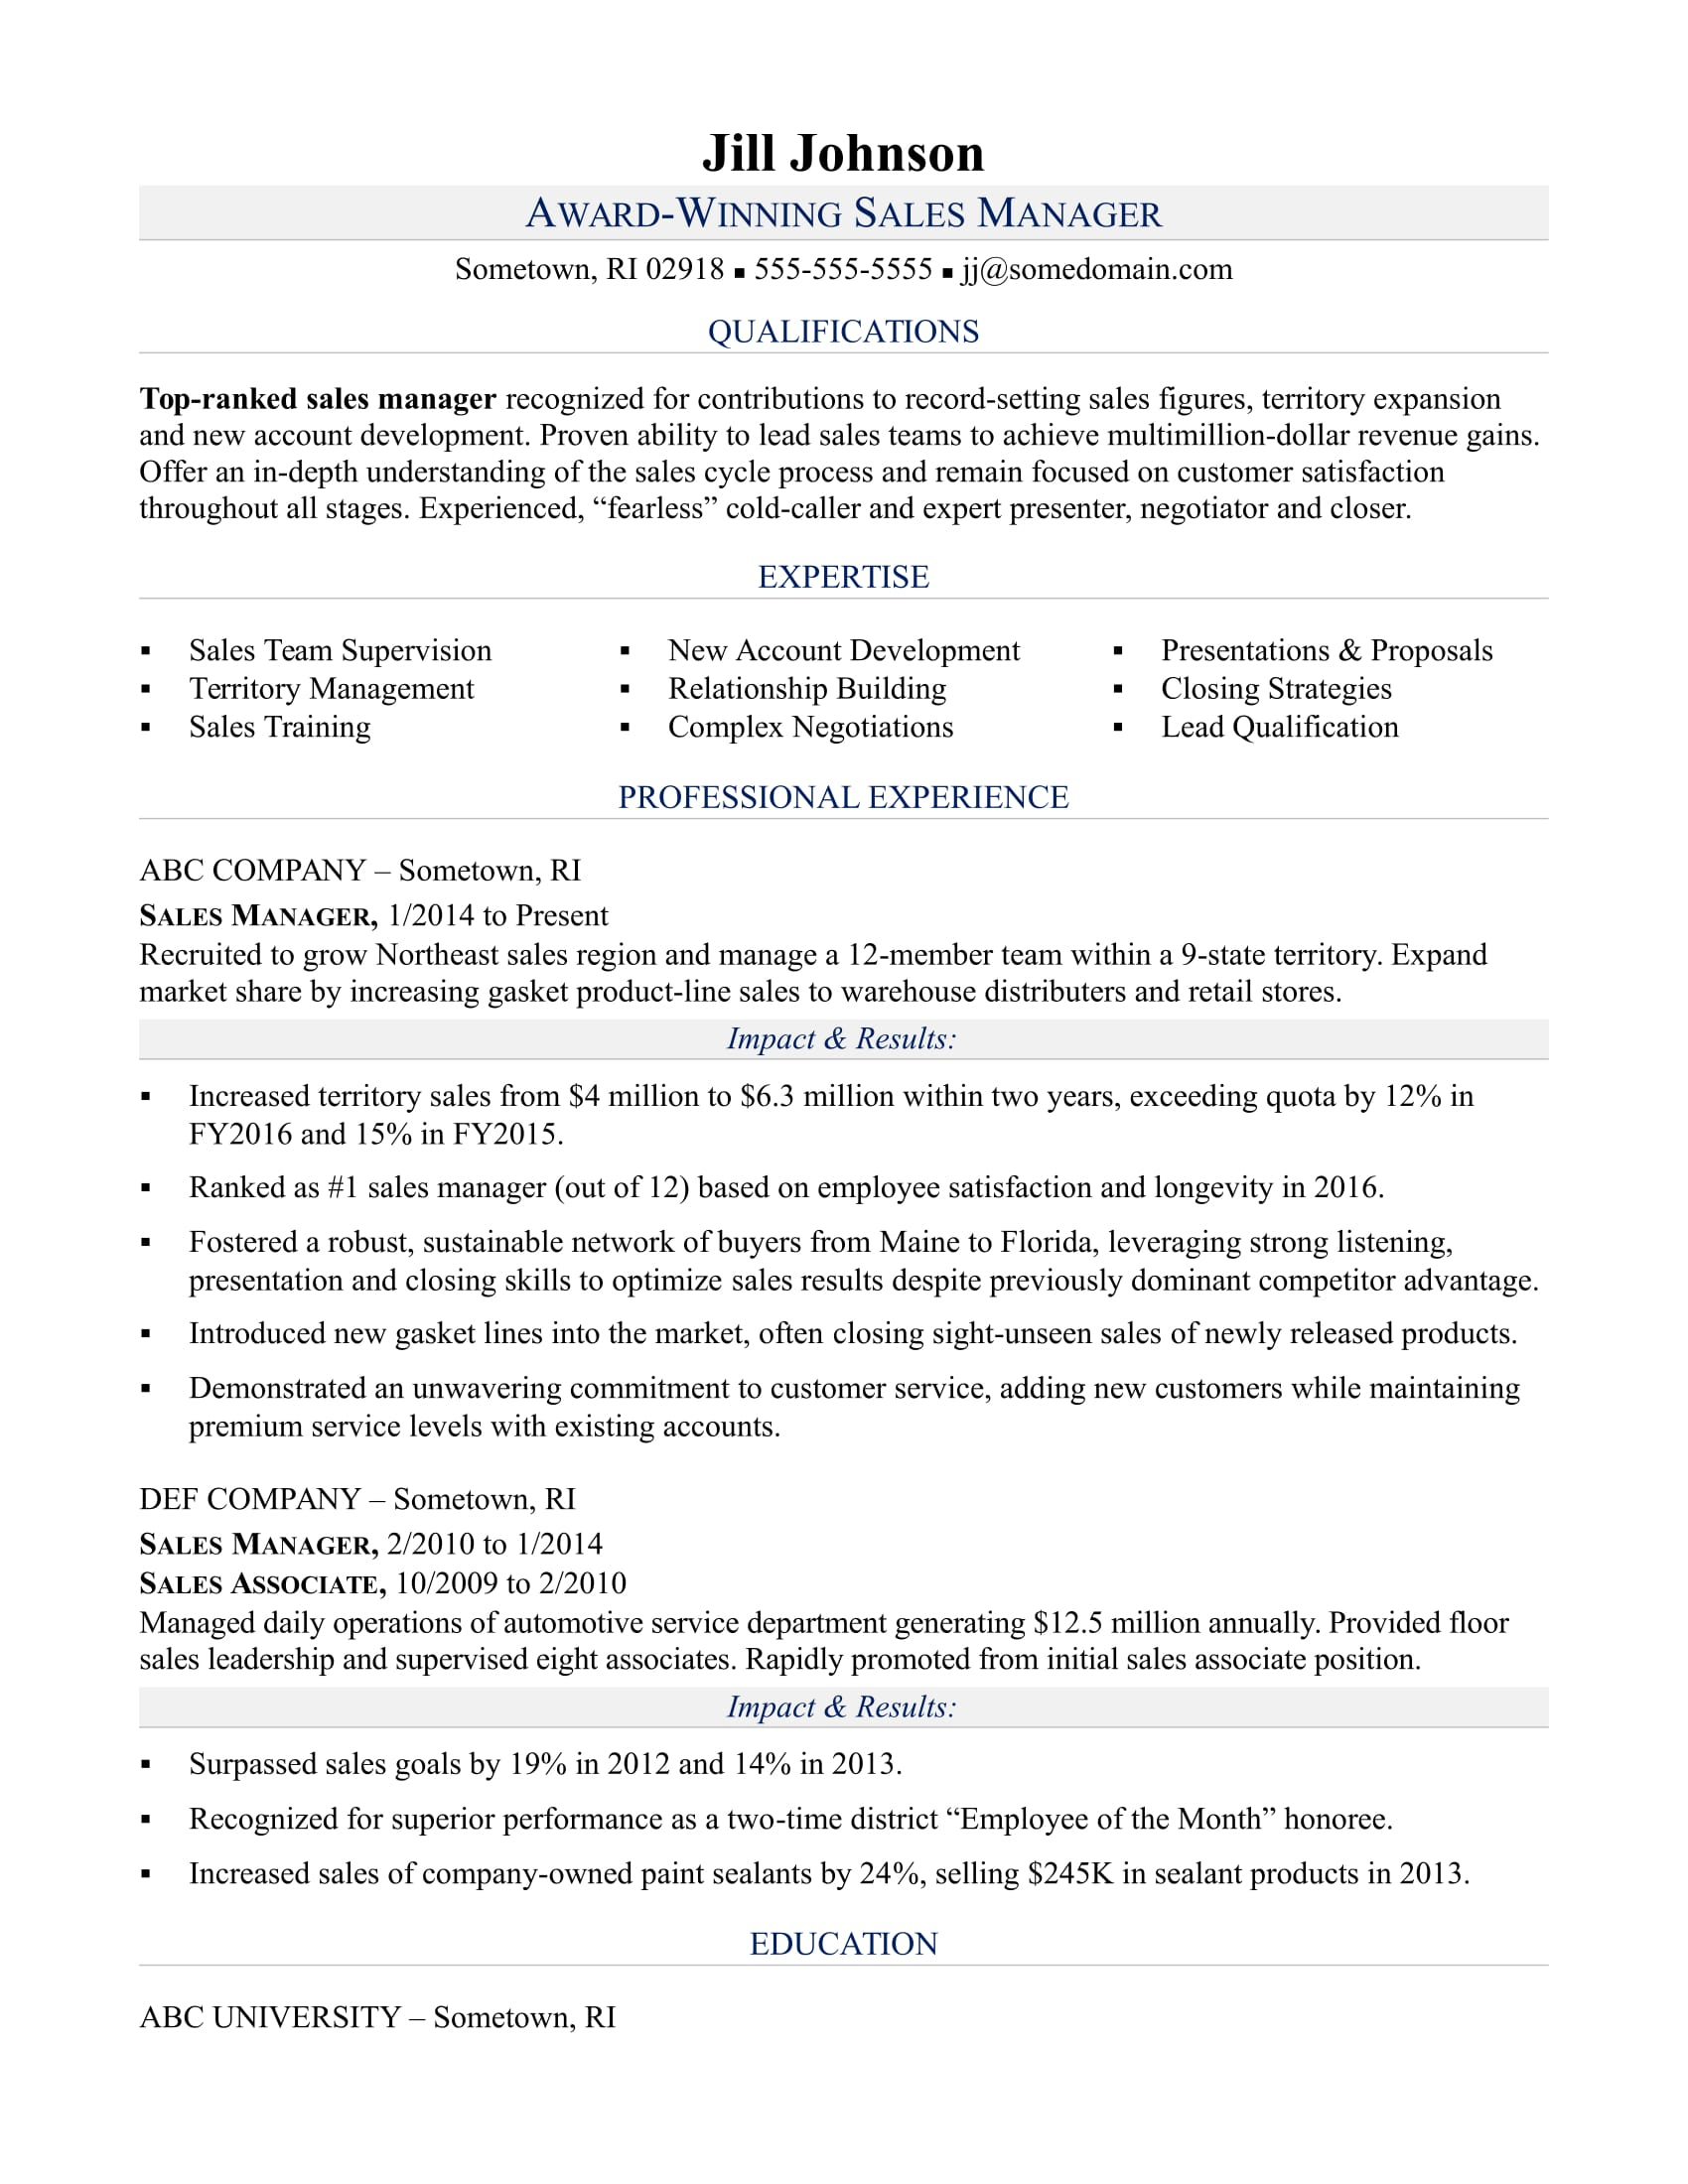 cb250c21d Sample resume for a sales manager